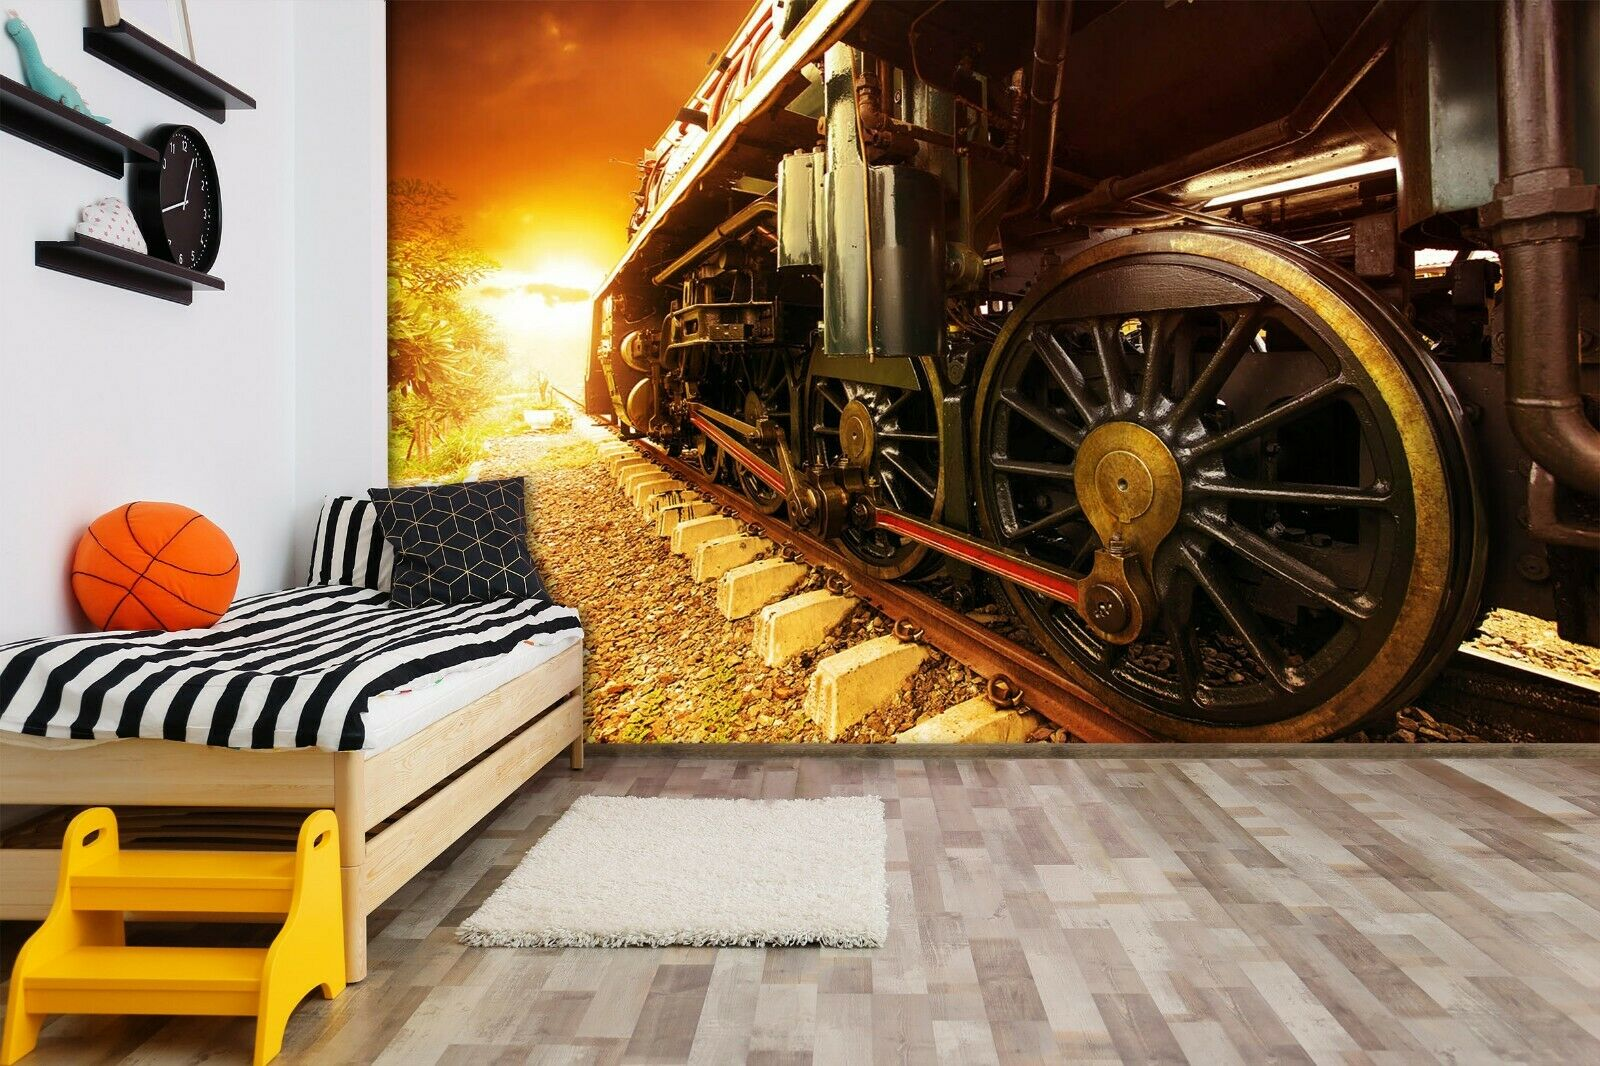 3D Train Wheel N421 Transport Wallpaper Mural Self-adhesive Removable Amy